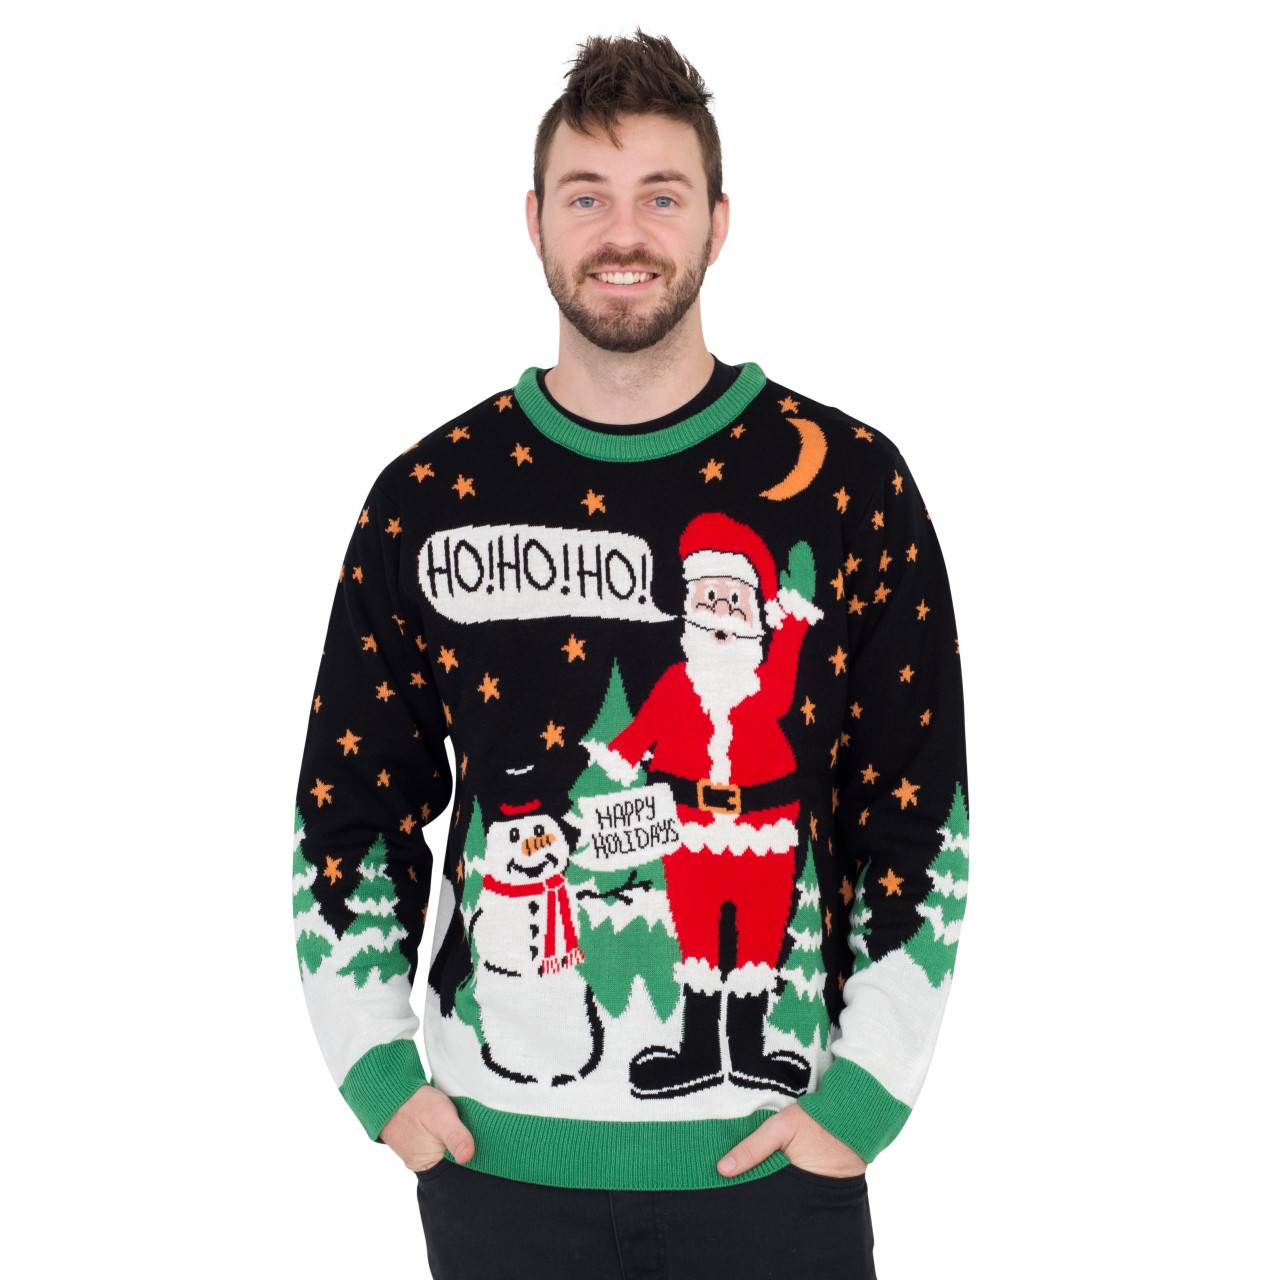 Ho Ho Ho It's #!@%ING Merry Christmas,Ugly Christmas Sweaters | Funny Xmas Sweaters for Men and Women